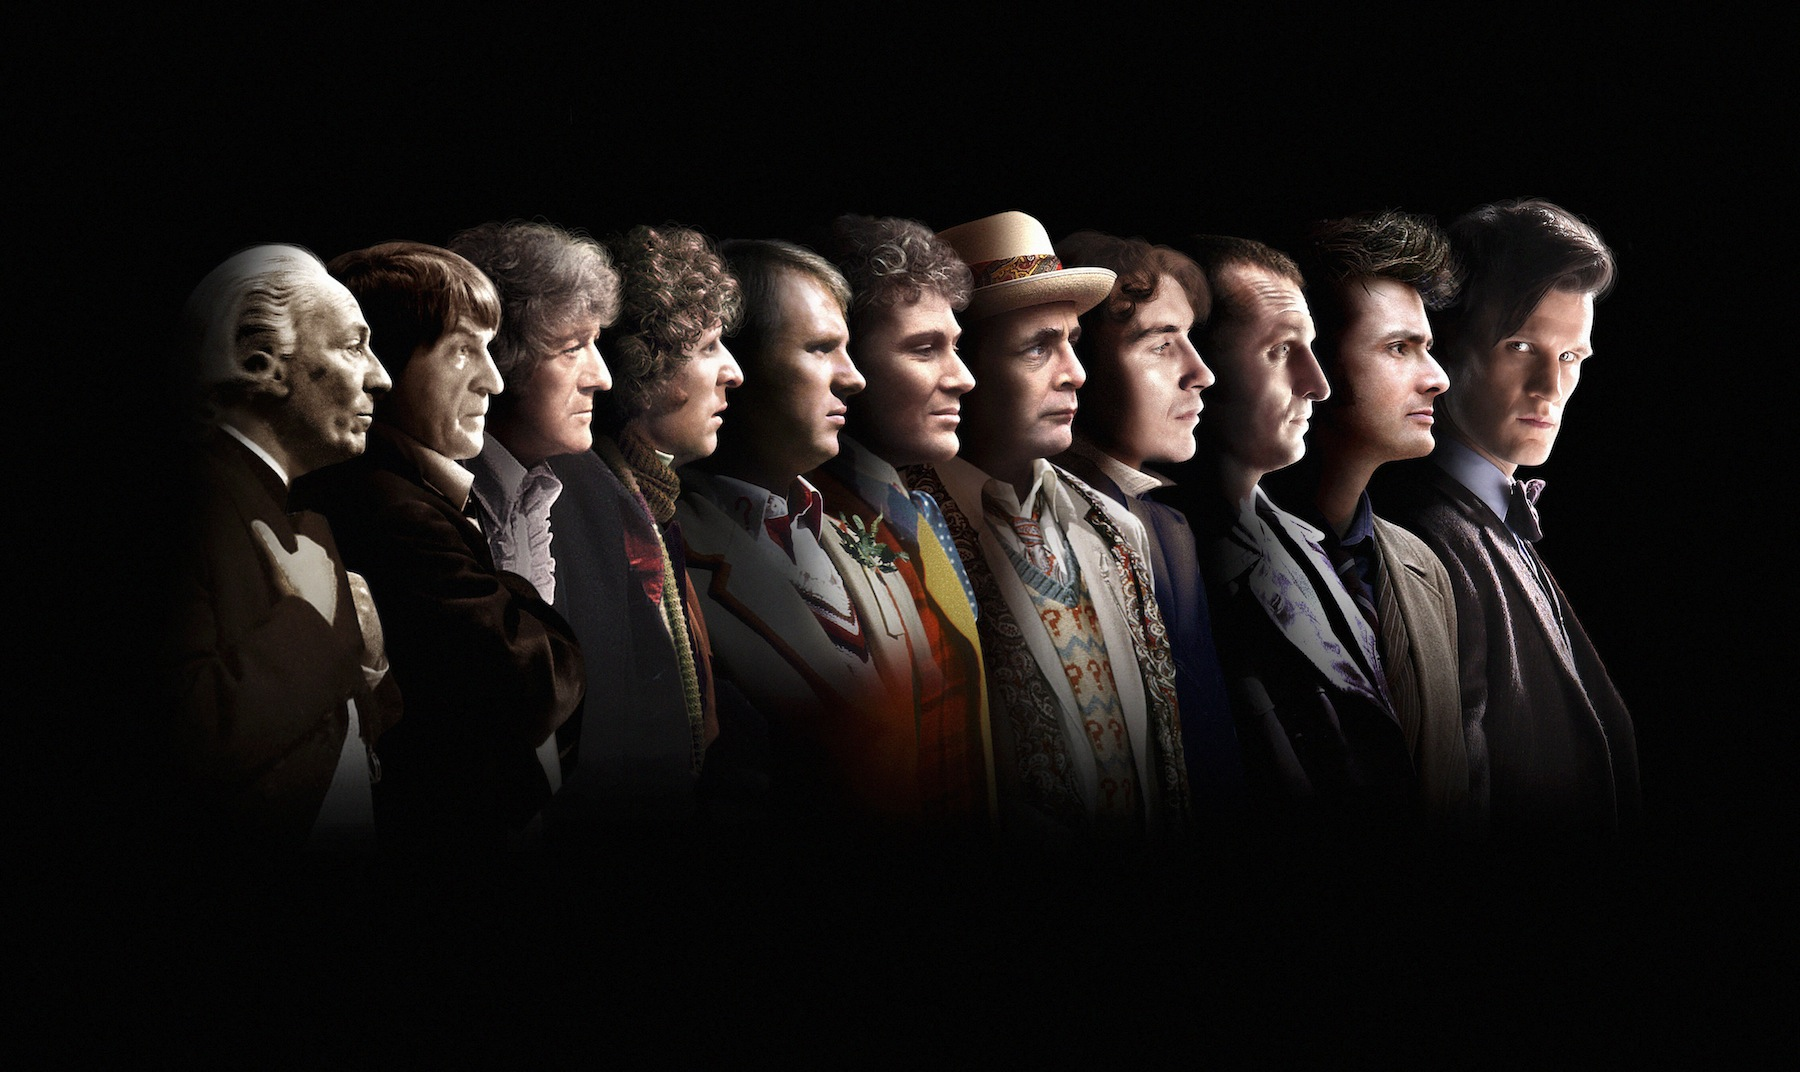 Doctor Who 50th Anniversary Special 'The Day Of The Doctor' Trailer And Excellent Photo Of All 11 Doctors #29388